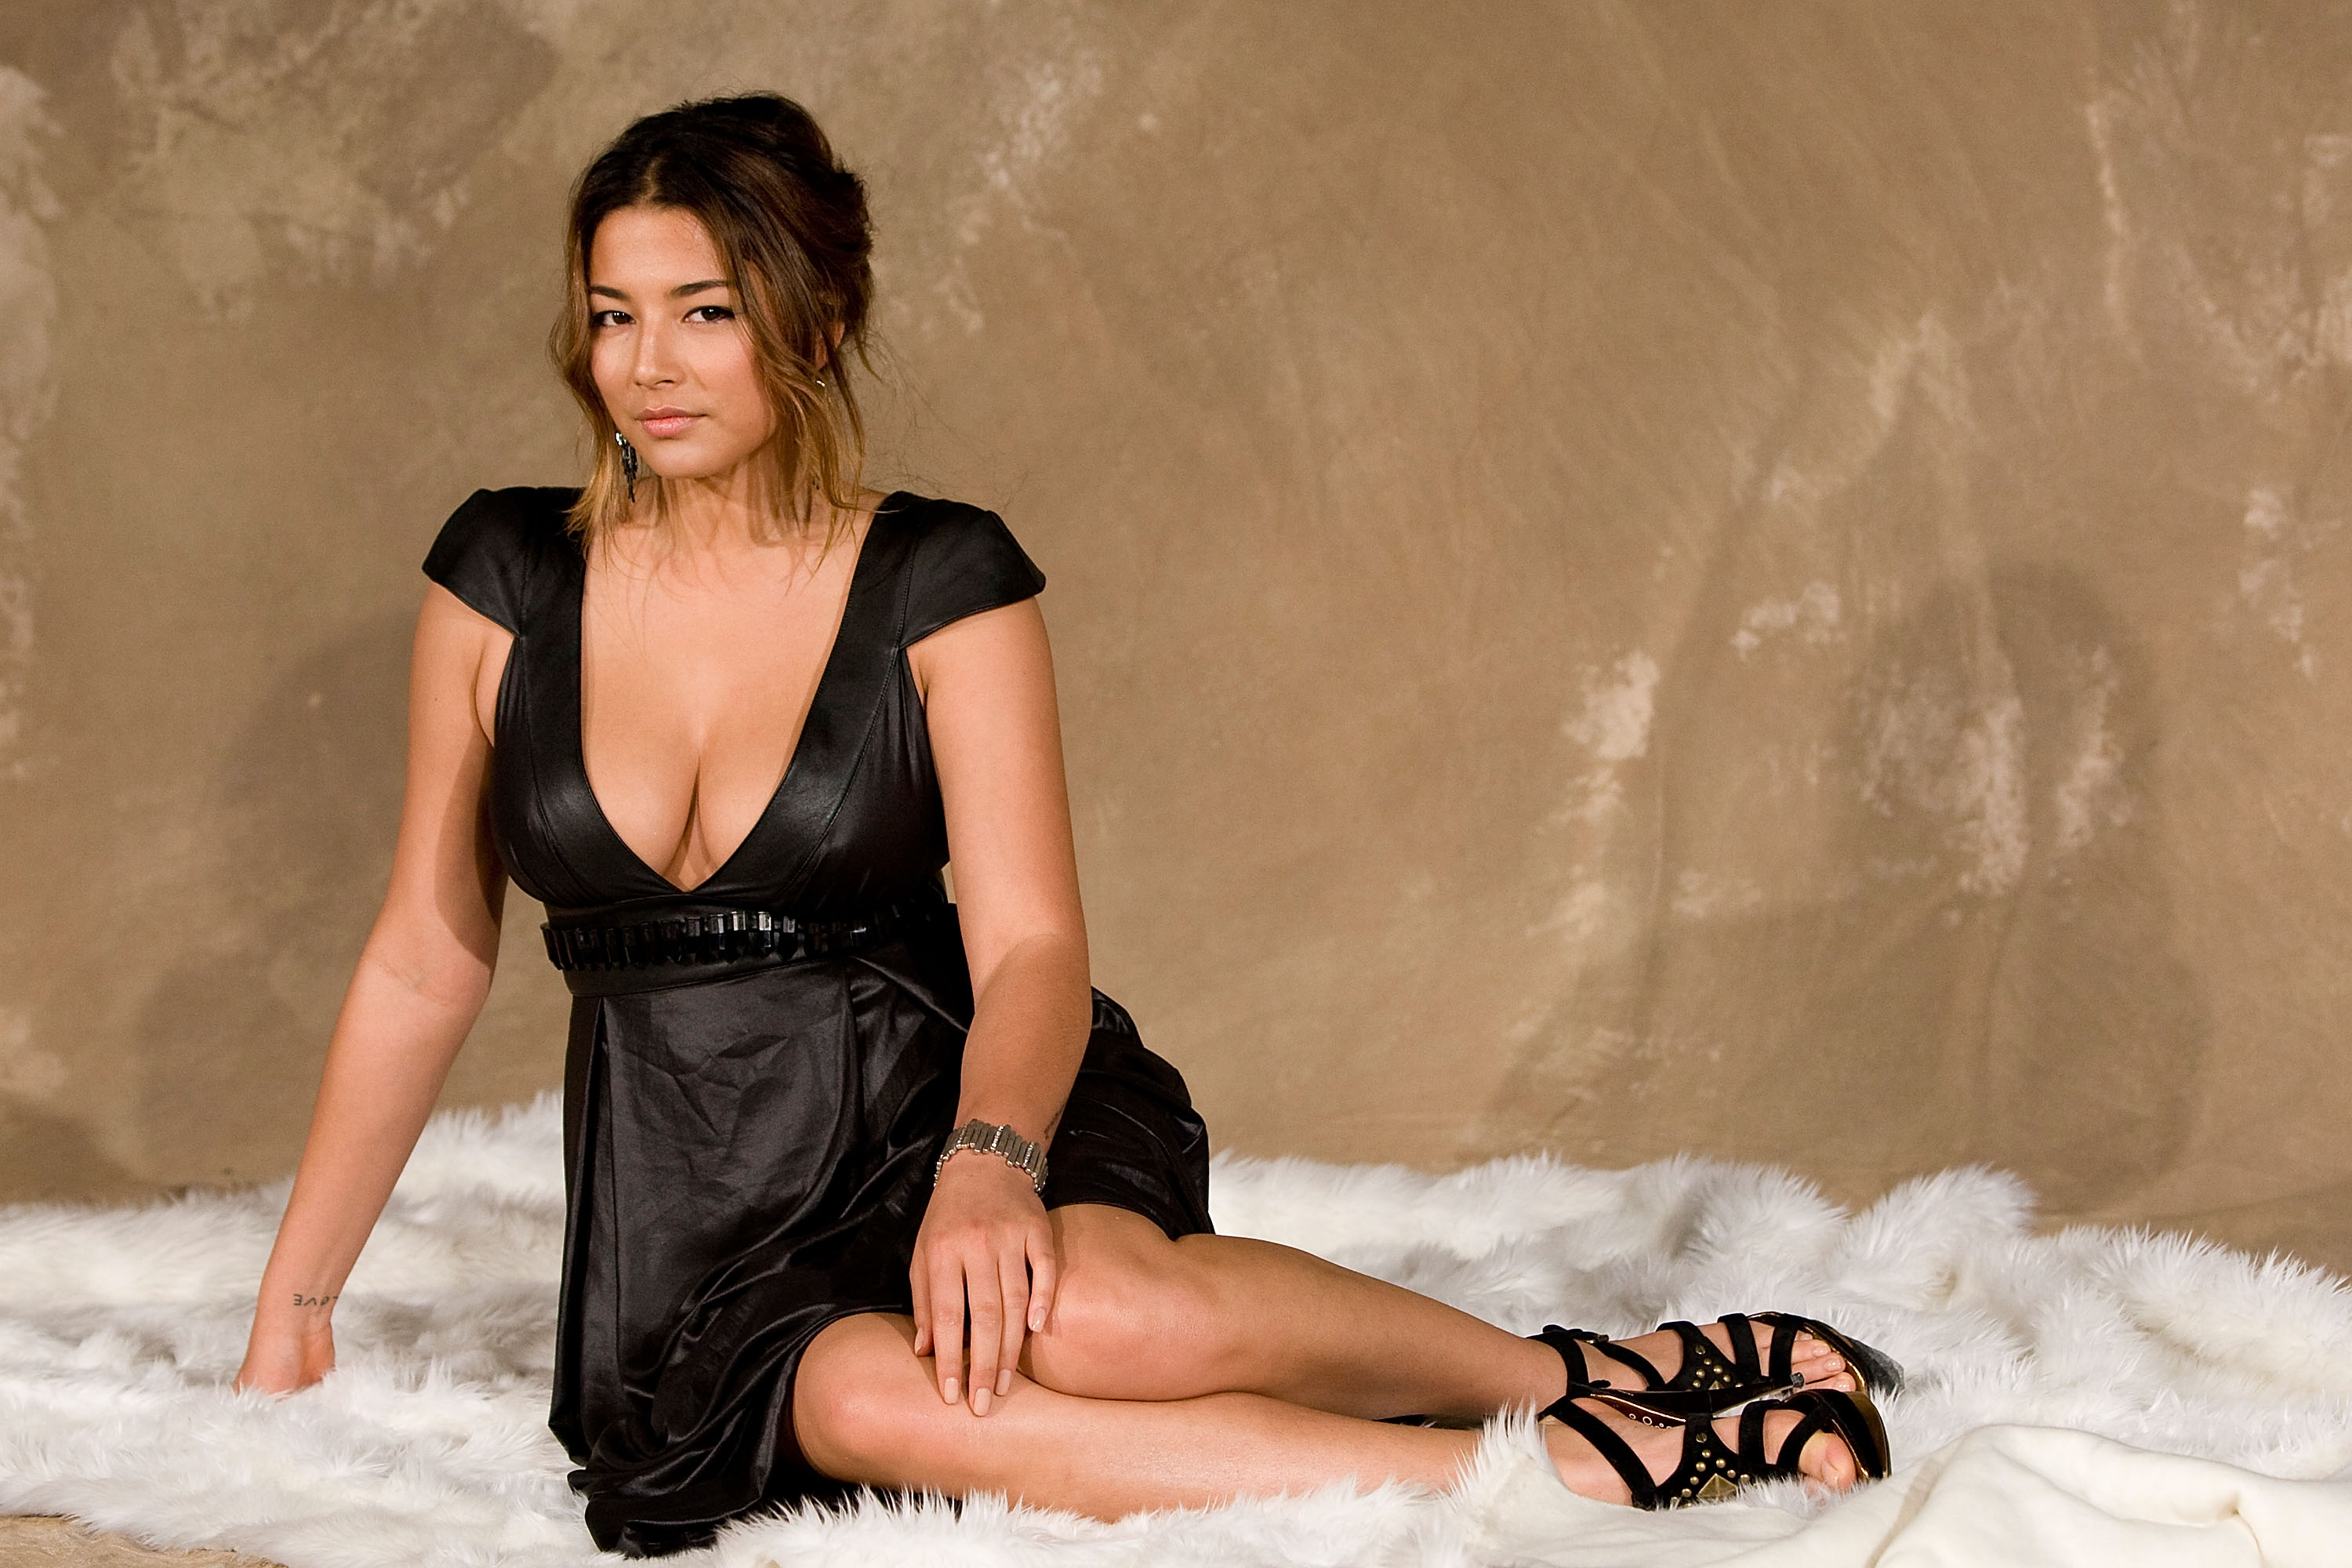 Jessica Gomes - 2015 Sports Illustrated Swimsuit Issue